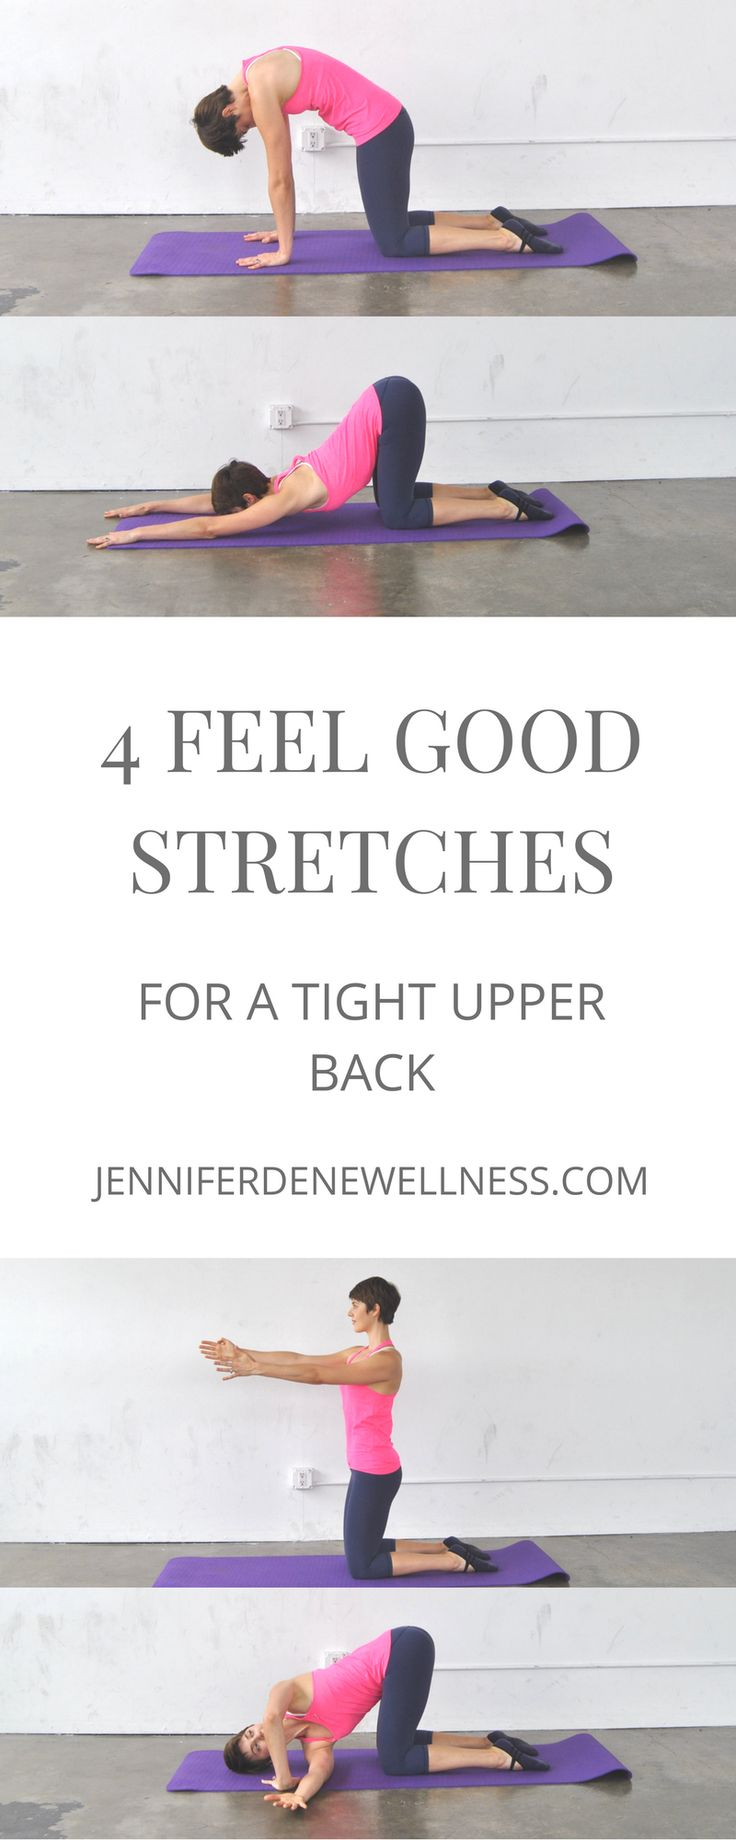 In today's workout I'm sharing four upper back stretches that will make your spine feel divine. All you need is an exercise mat, so come on in and join the fun!